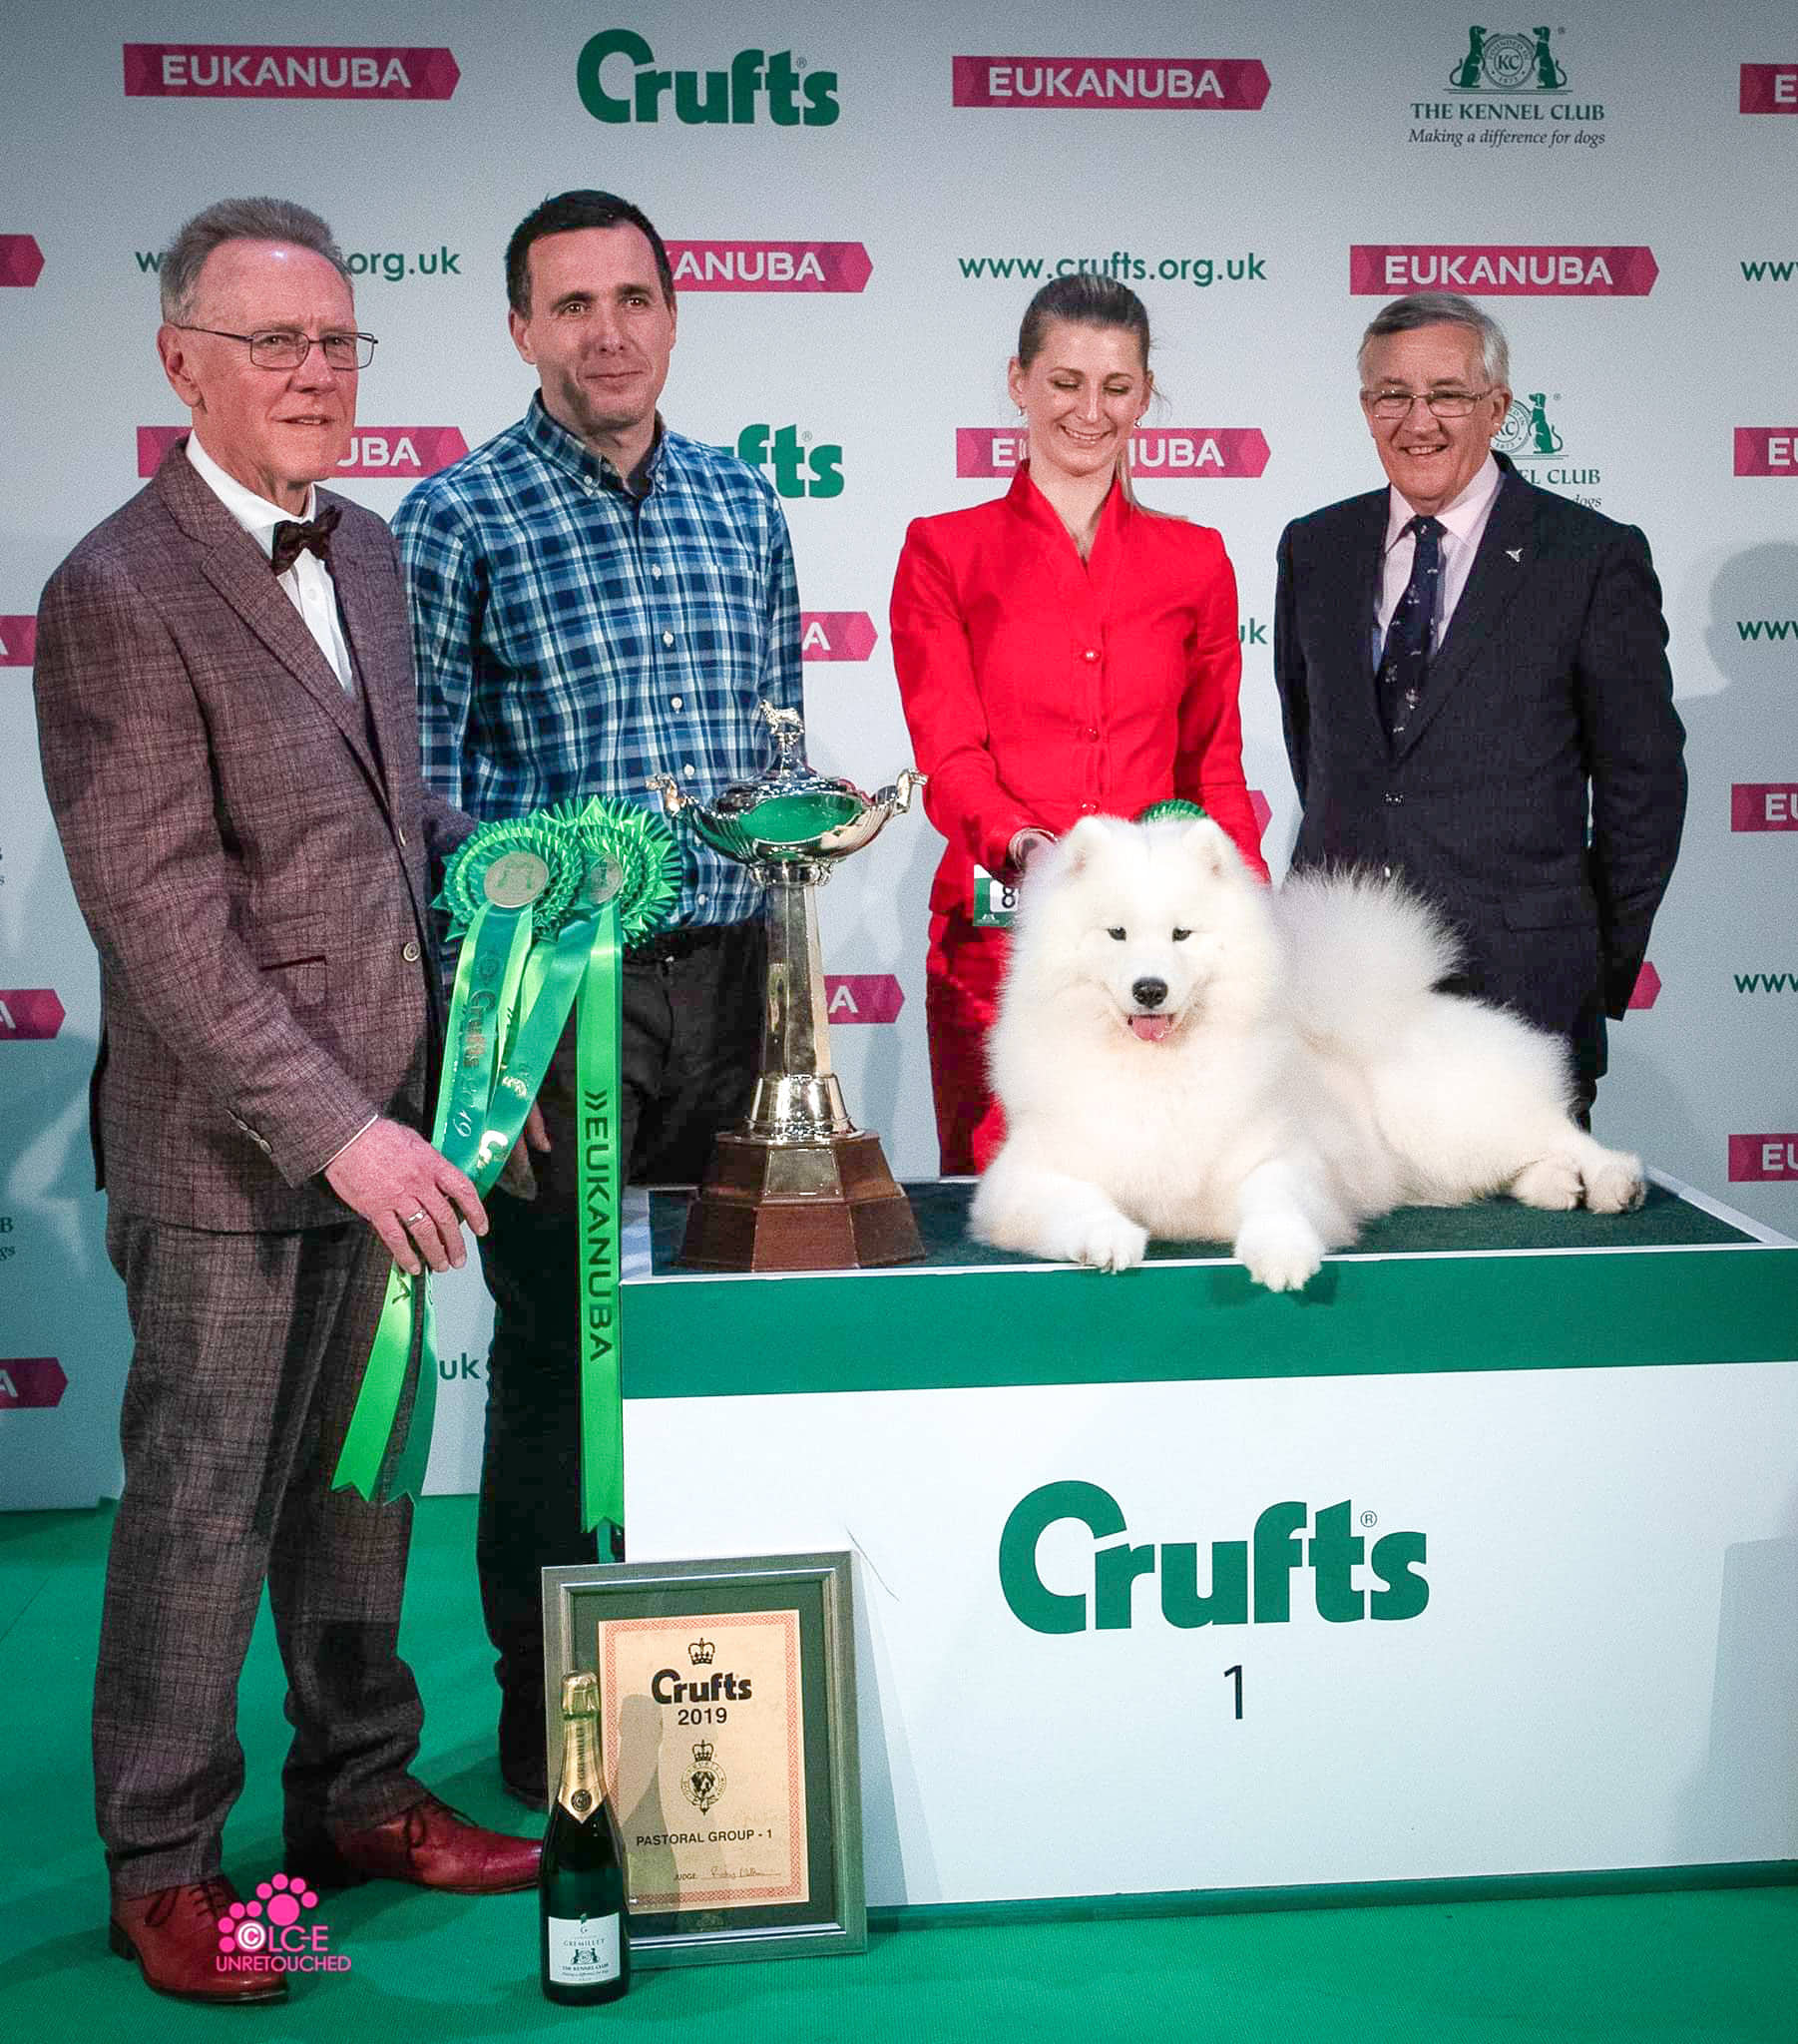 Charleen wins Pastoral group at Cruft's 2019